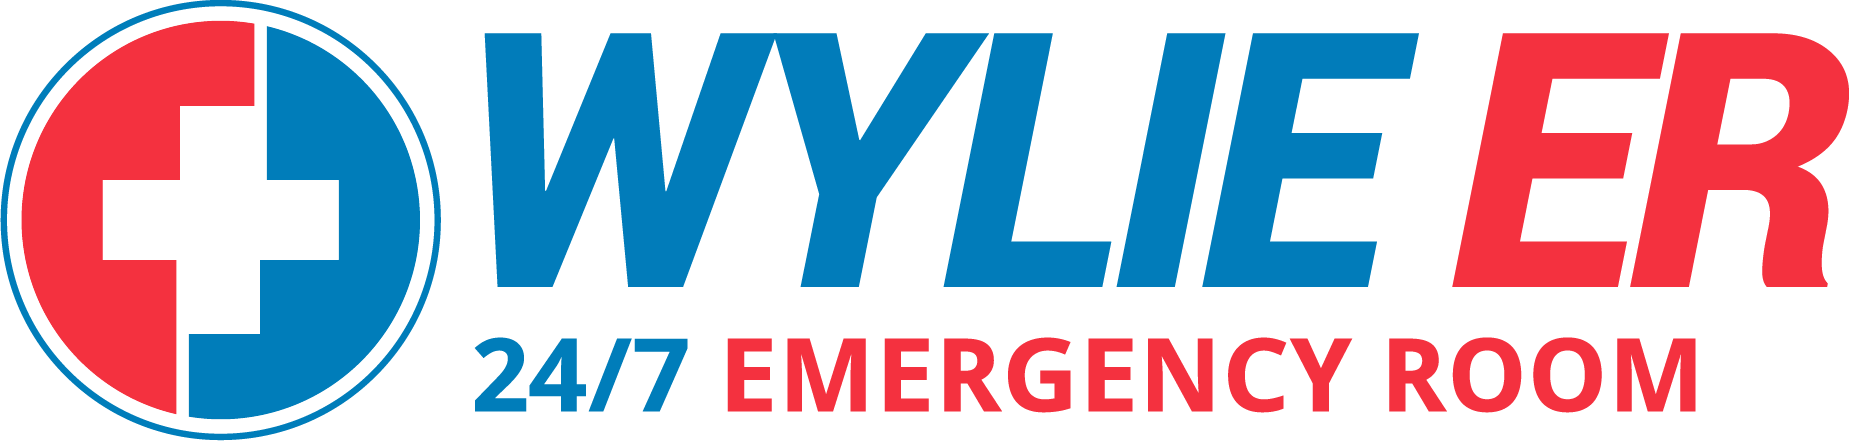 Wylie ER 24/7 Emergency Room